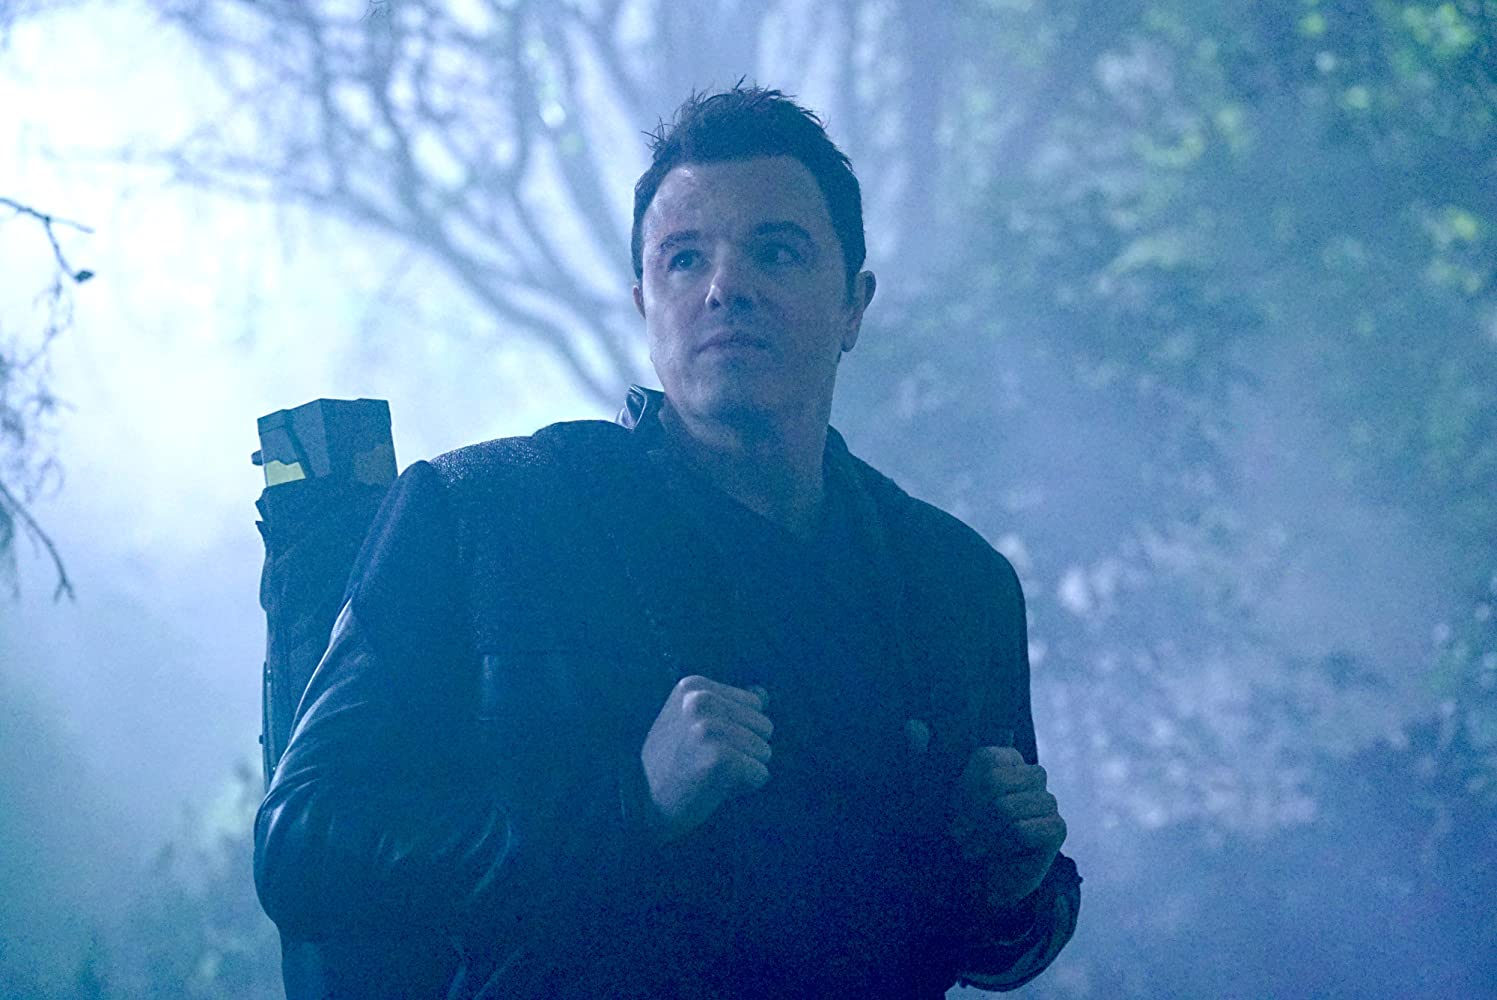 Seth MacFarlane in The Orville (2017)